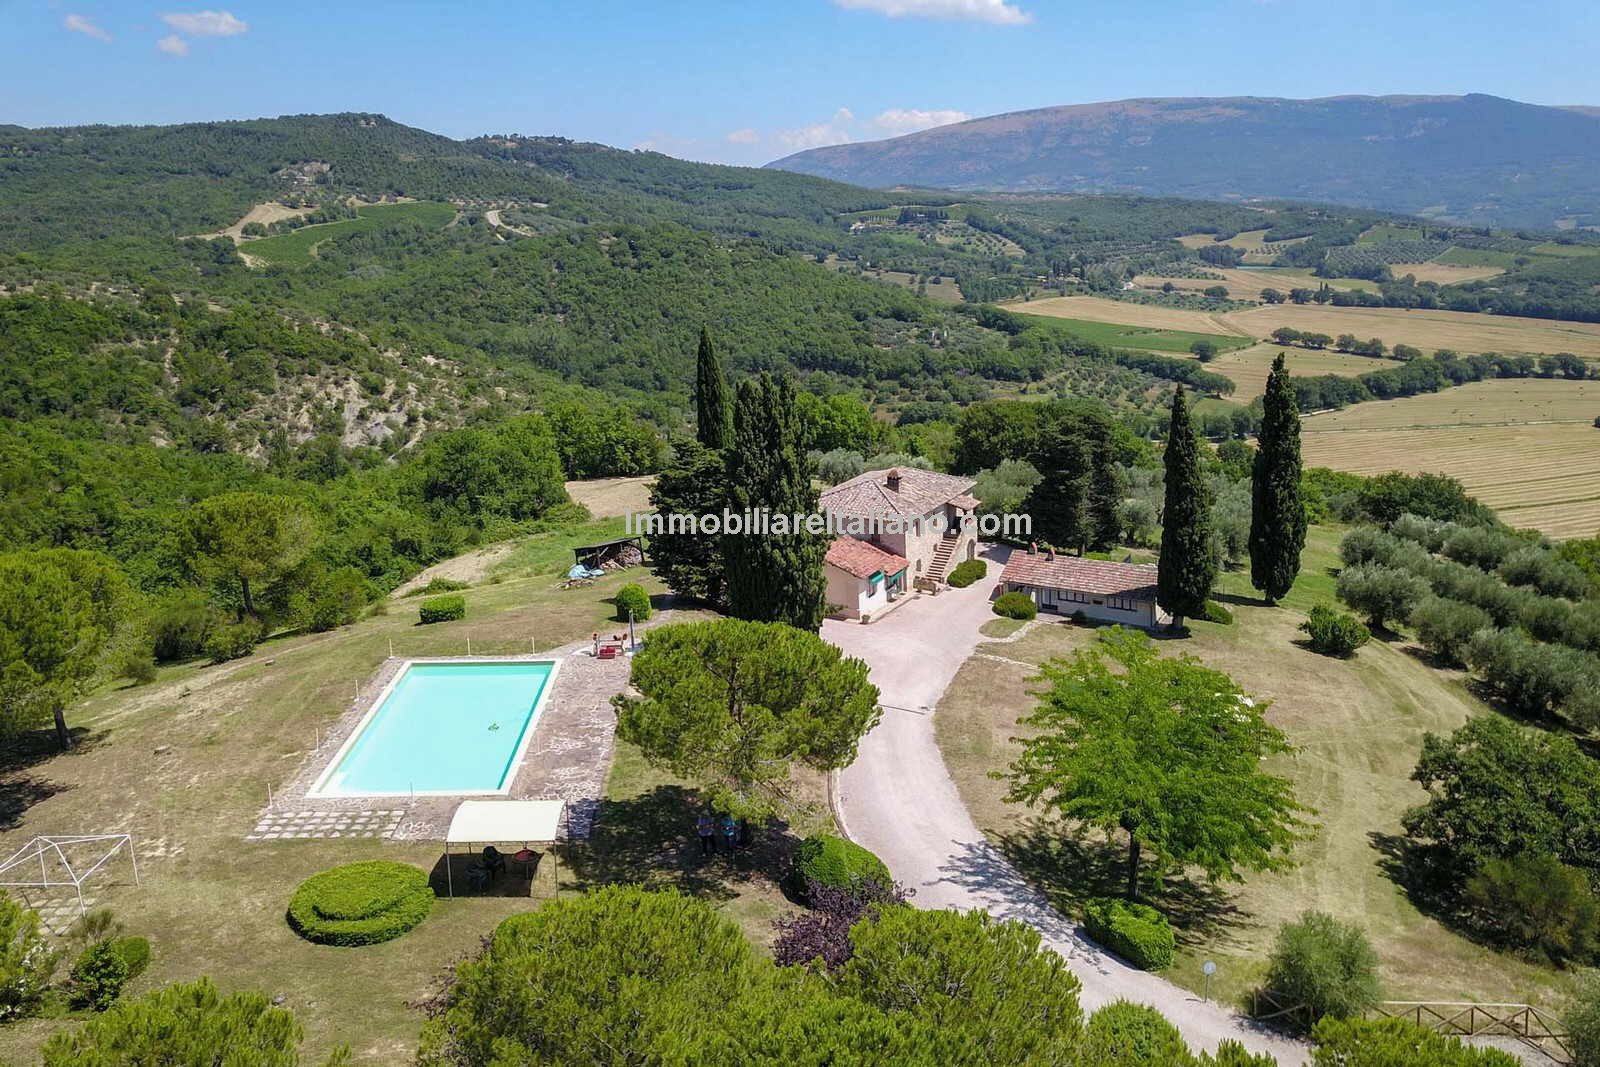 Agriturismo for sale